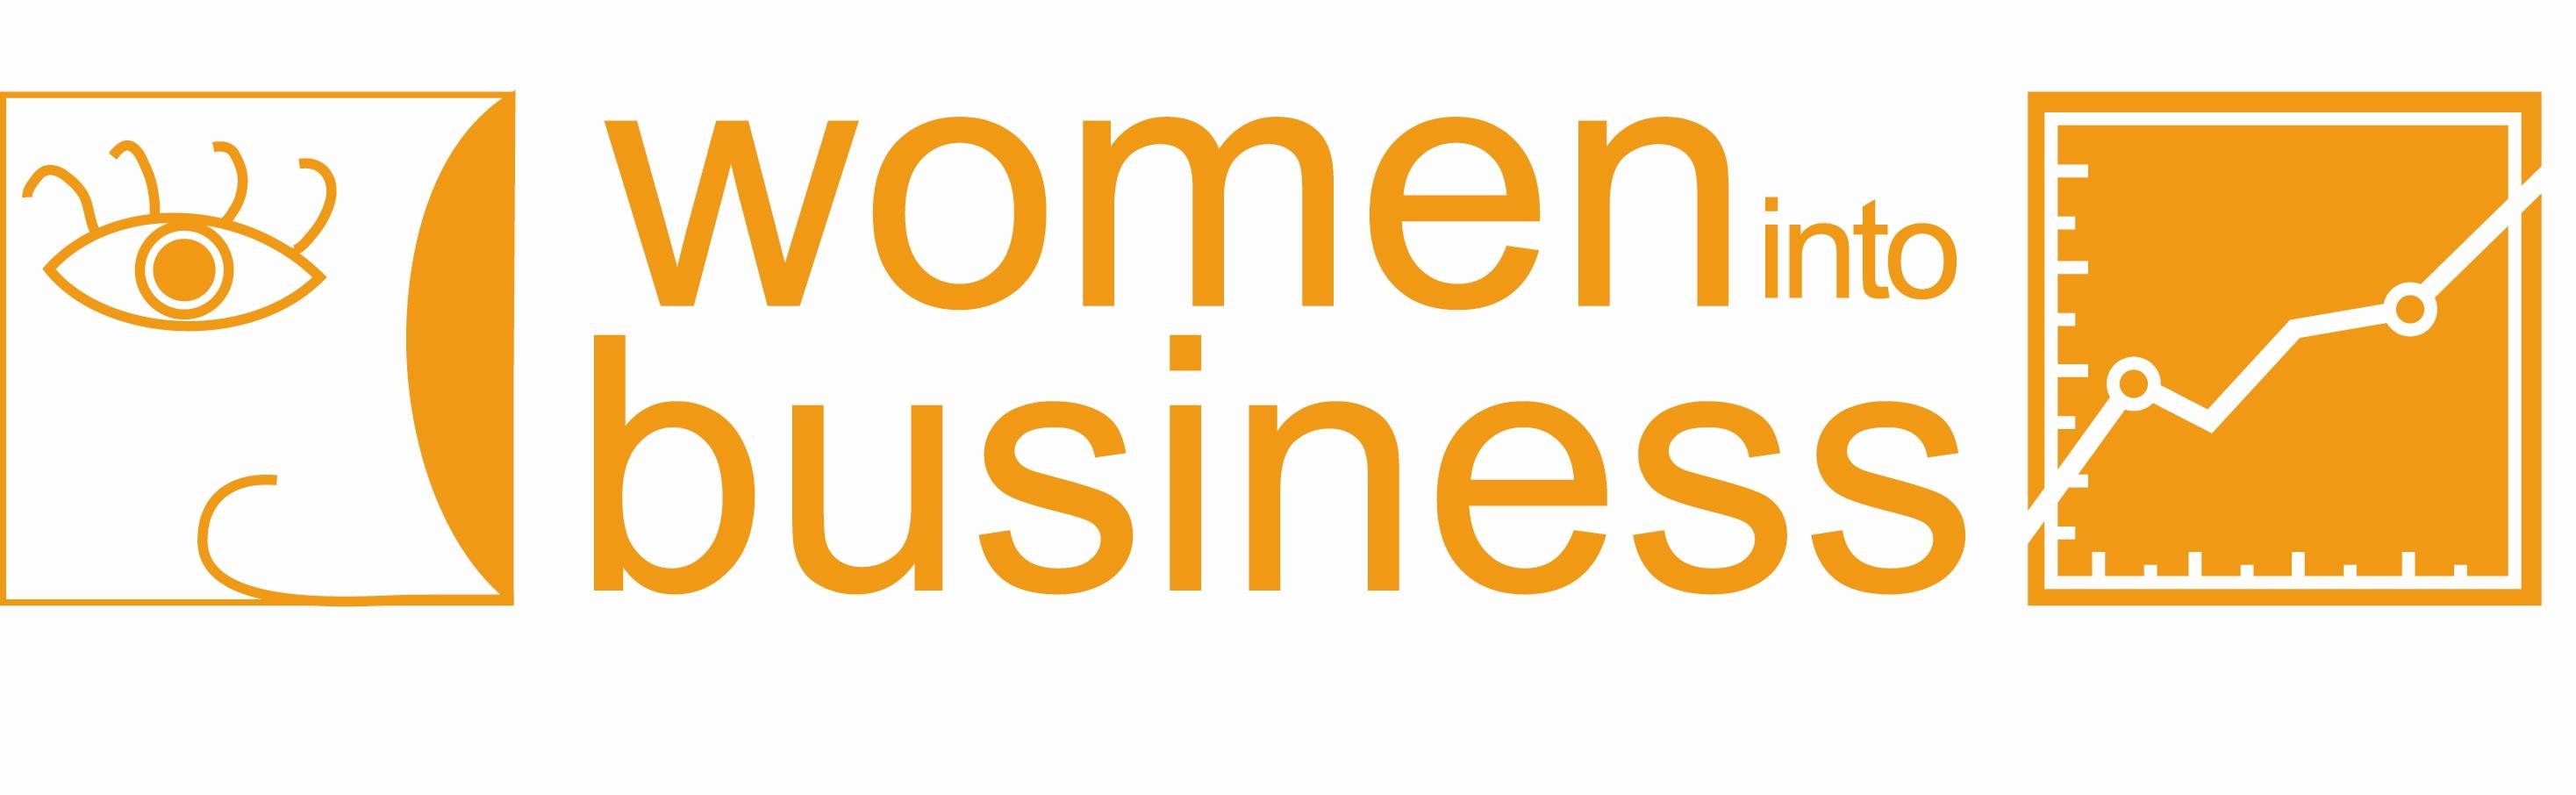 Women into Business